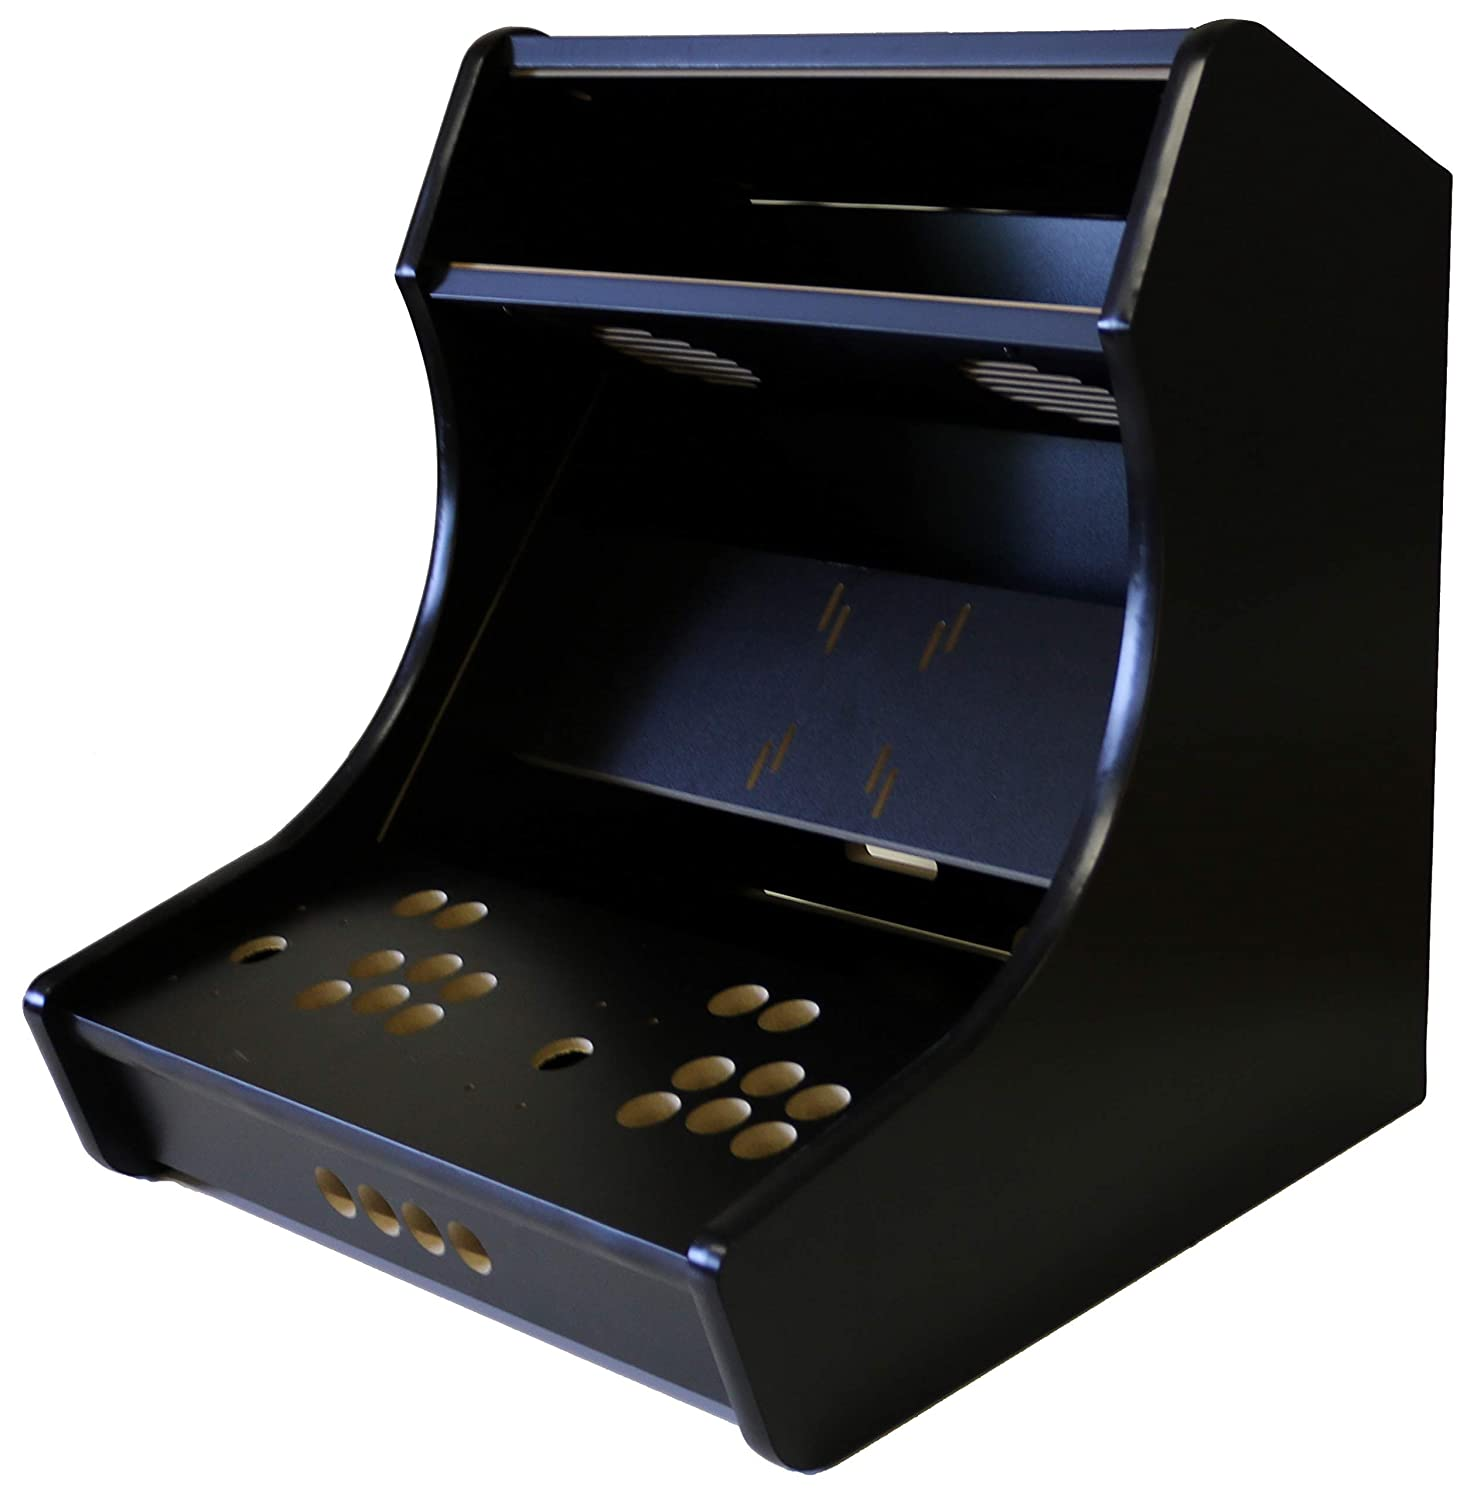 Gameroomsolutions Deluxe Bartop Arcade Cabinet Kit Easy Assembly